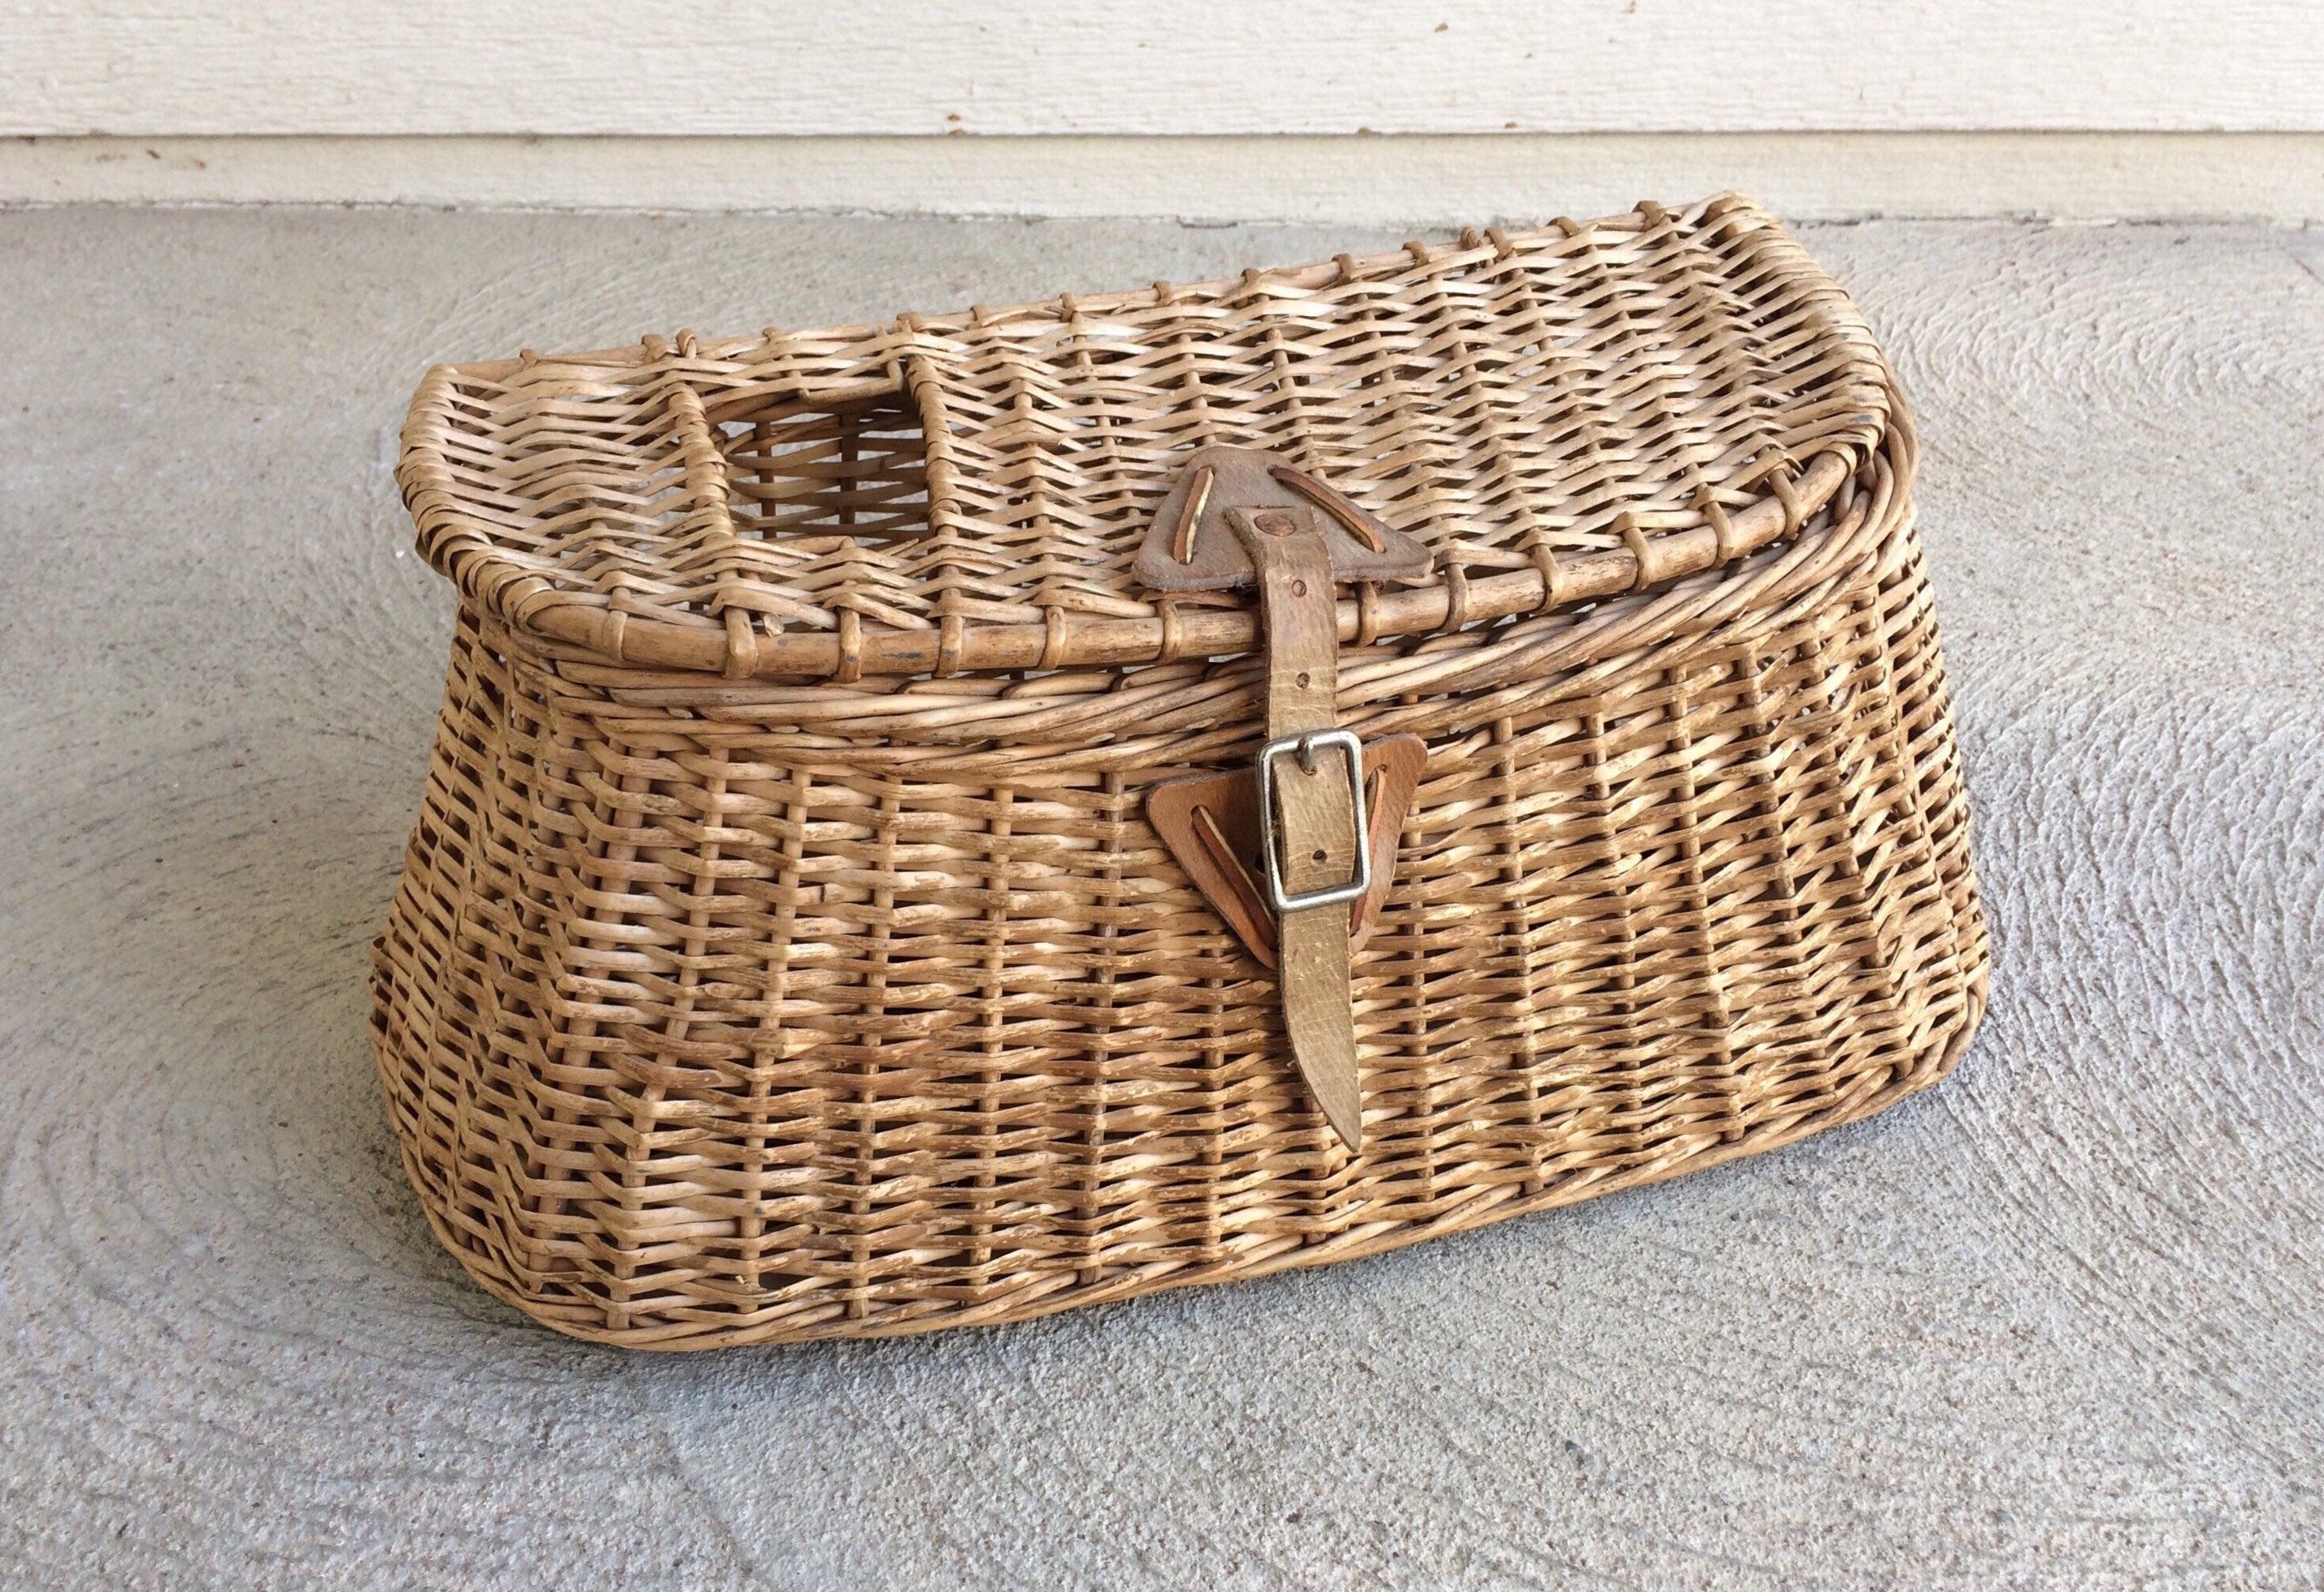 Vintage Fly Fishing Basket/Fishing Decor/Rustic Fishing Decor/Cabin Decor Ideas/ & Vintage Fly Fishing Basket/Fishing Decor/Rustic Fishing Decor/Cabin ...